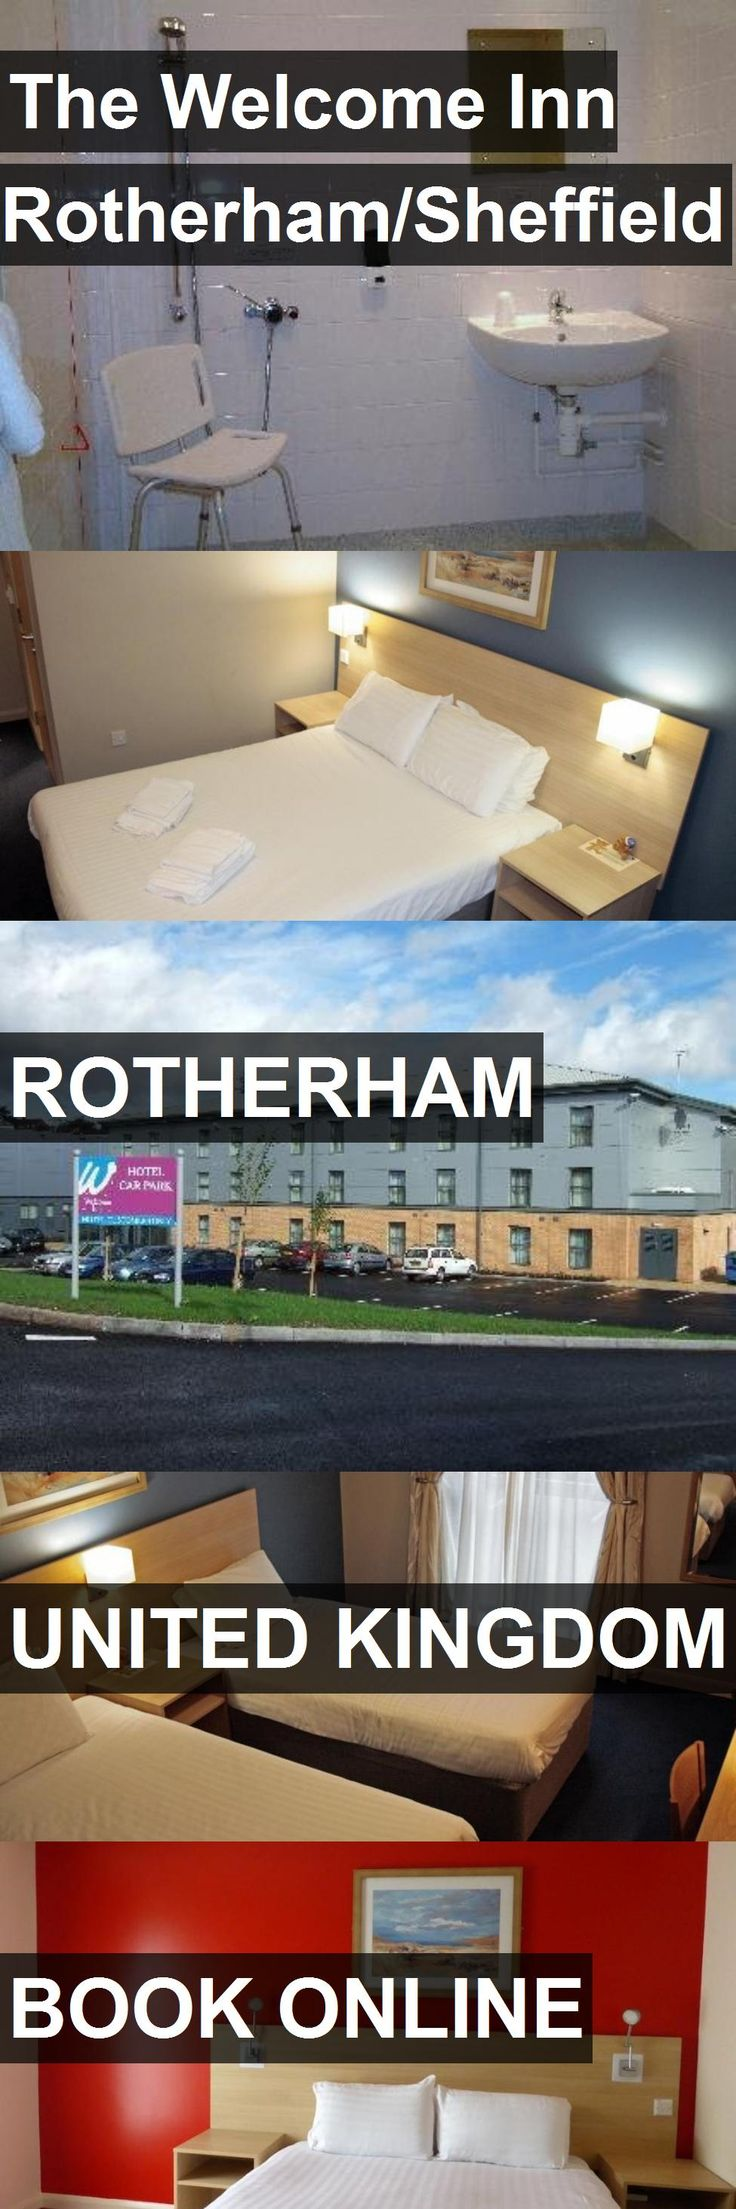 Hotel The Welcome Inn Rotherham/Sheffield in Rotherham, United Kingdom. For more information, photos, reviews and best prices please follow the link. #UnitedKingdom #Rotherham #travel #vacation #hotel  #RePin by AT Social Media Marketing - Pinterest Marketing Specialists ATSocialMedia.co.uk